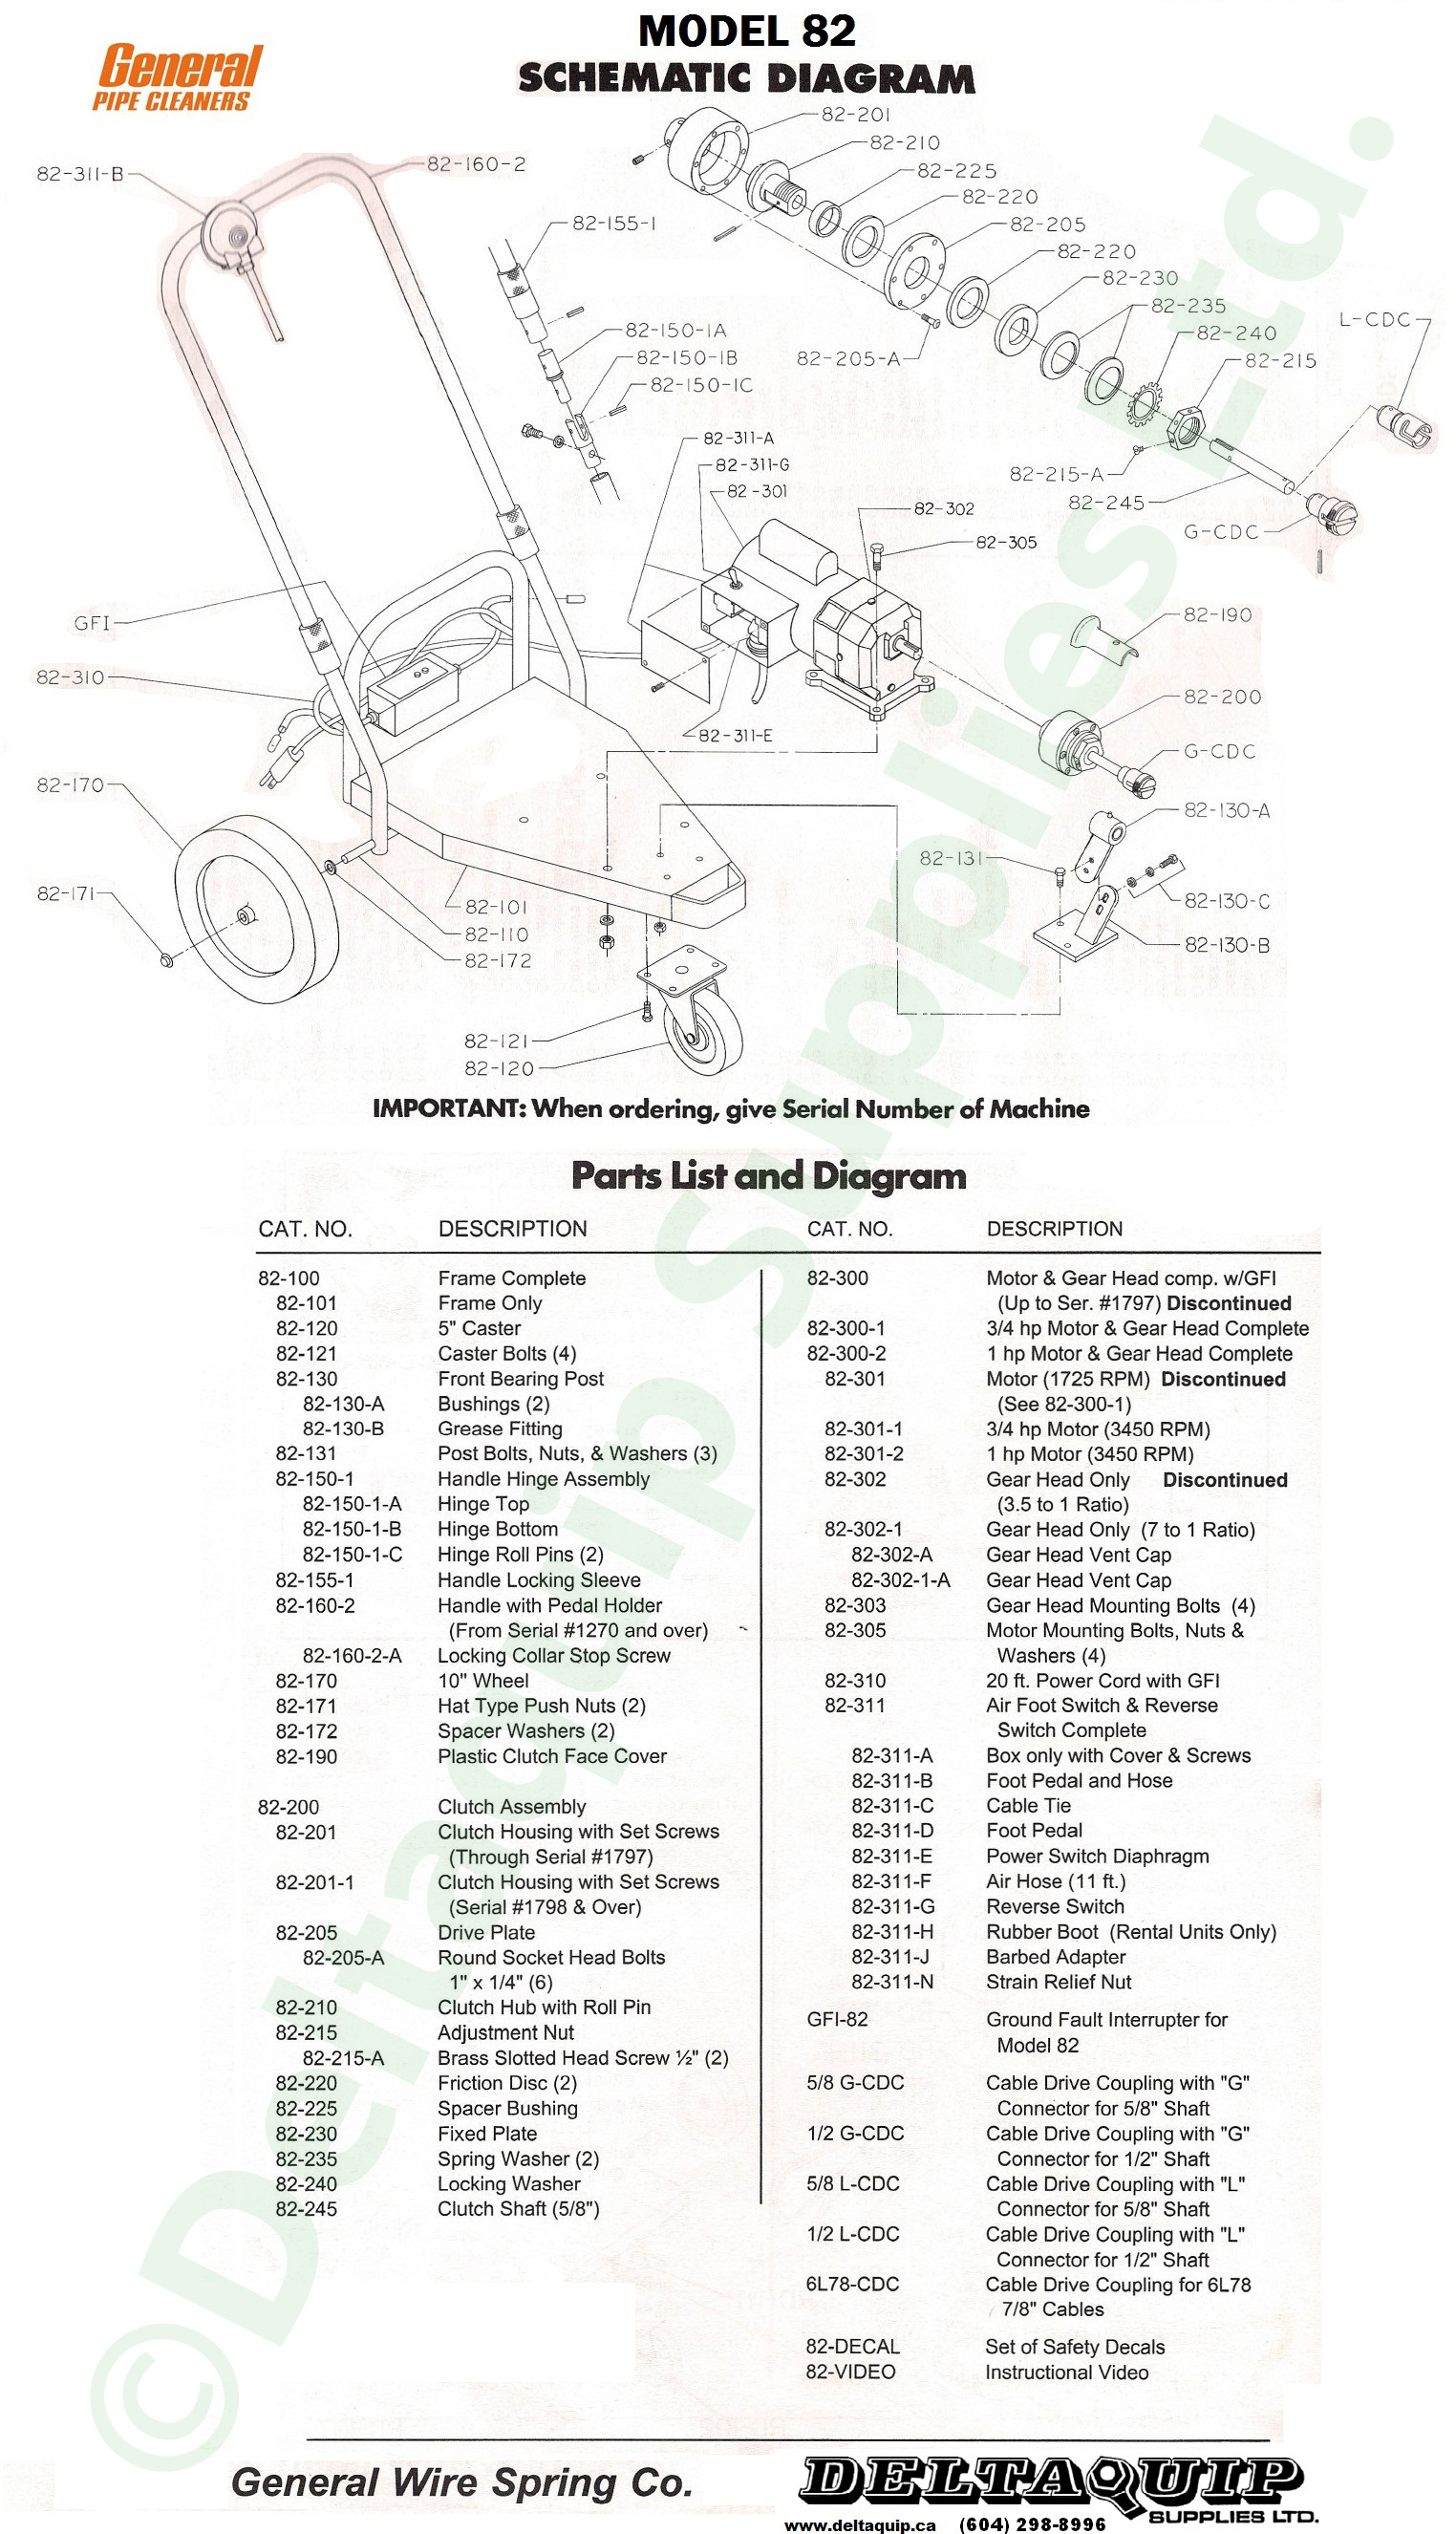 General Wire Spring Model 88